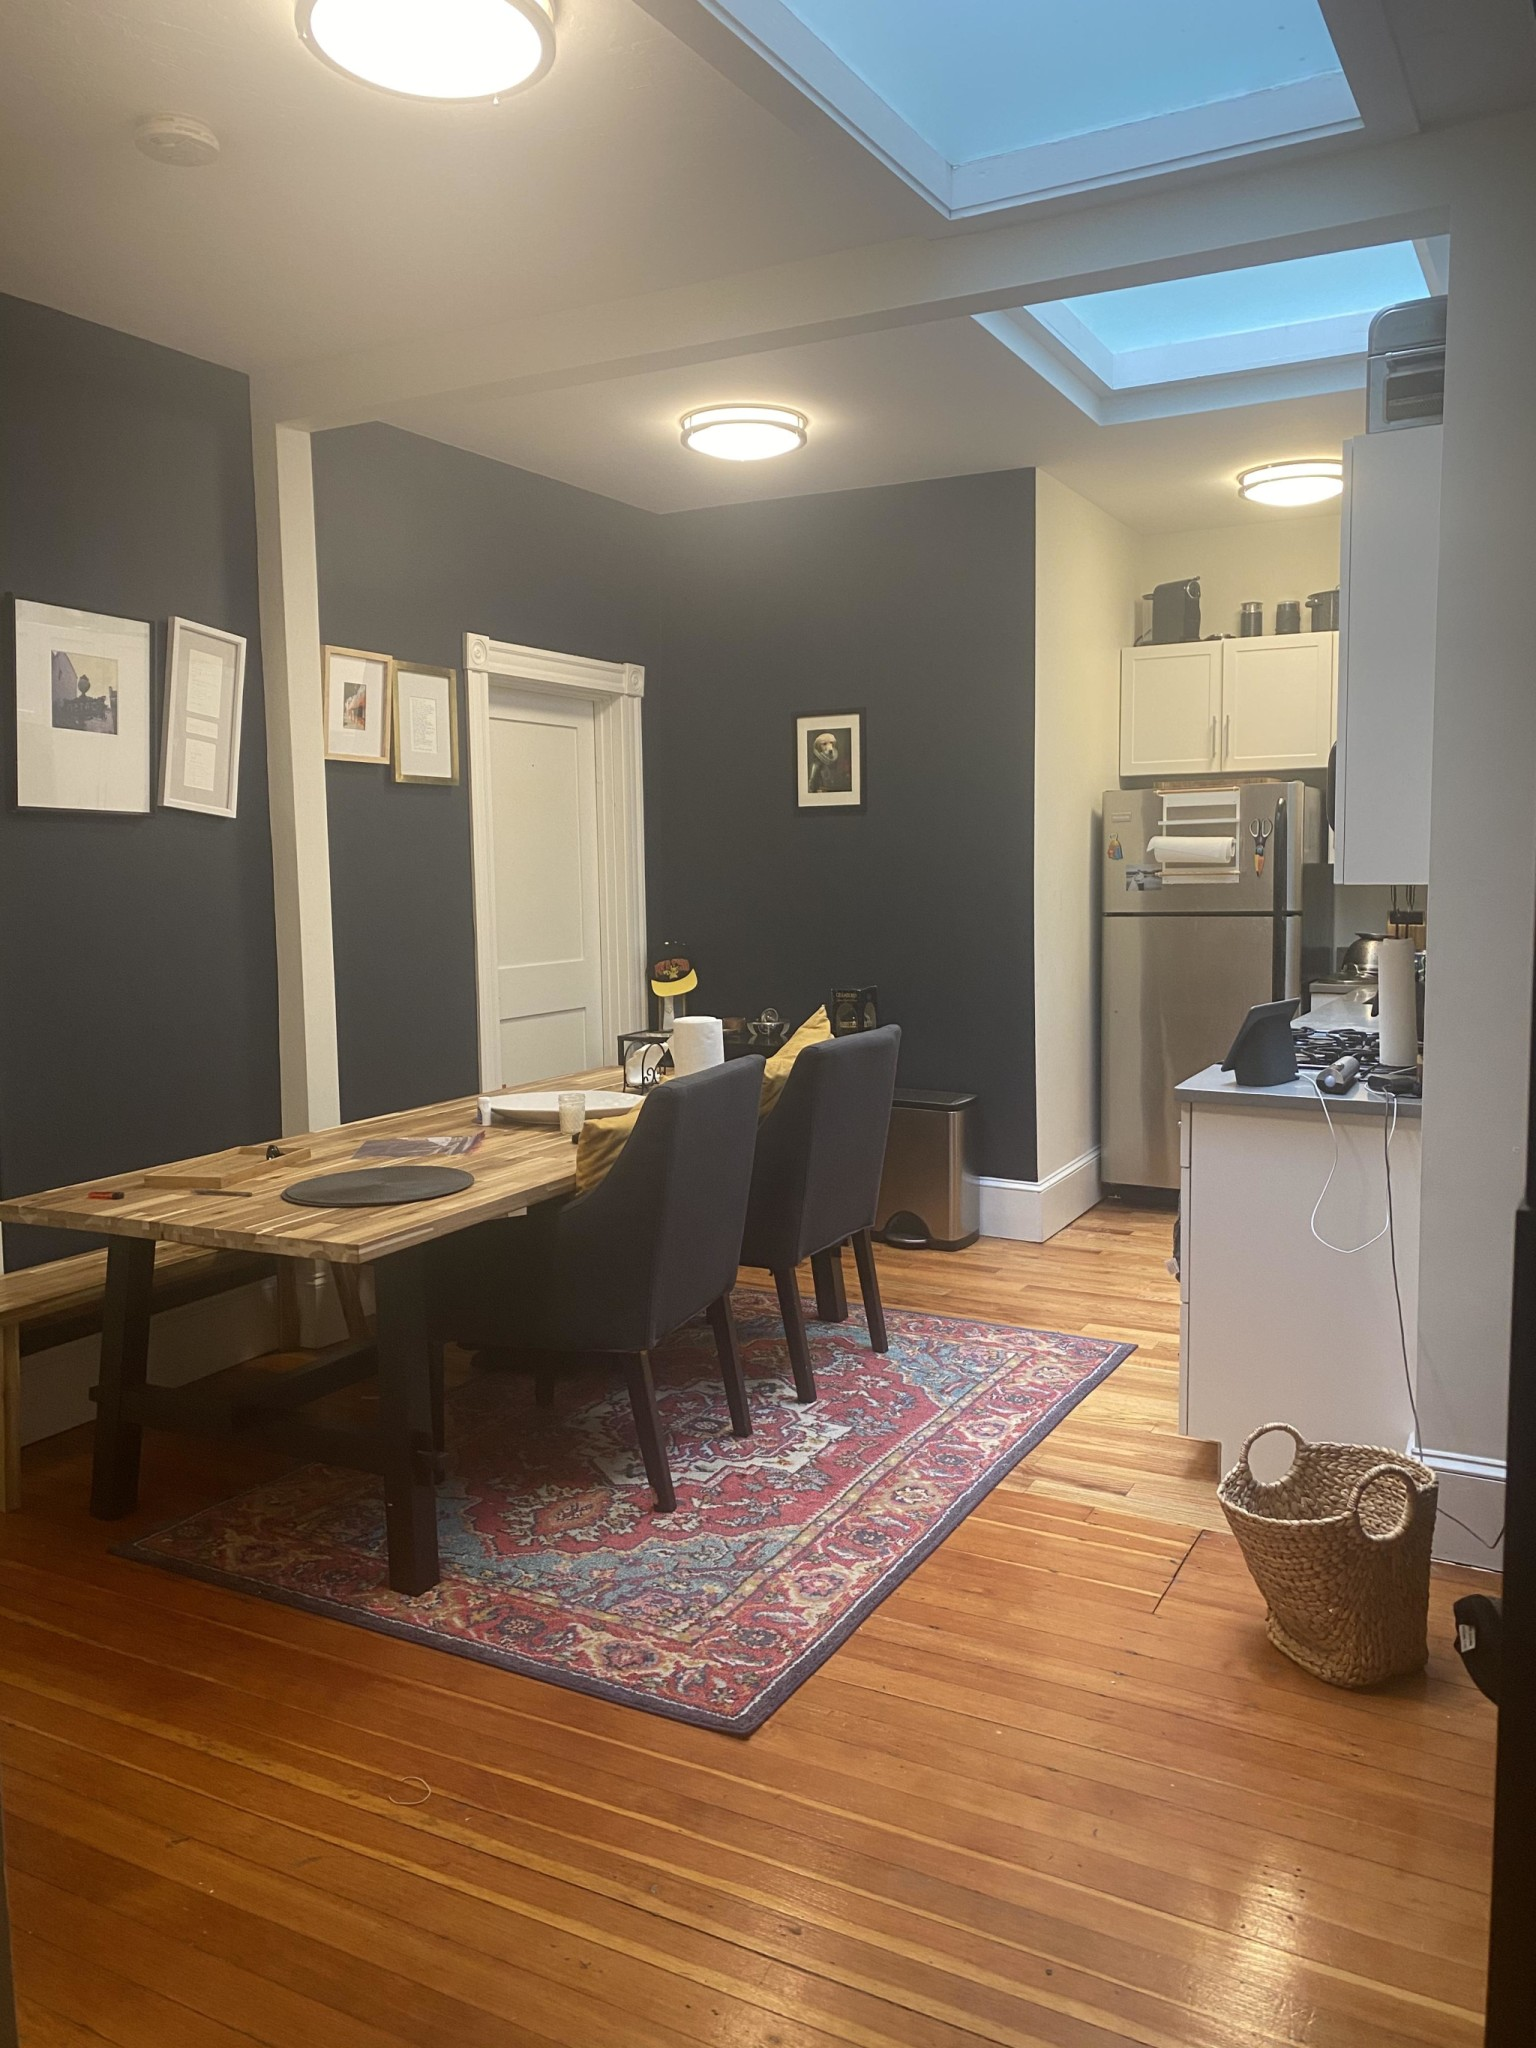 2 Beds, 1 Bath apartment in Boston, South End for $2,500